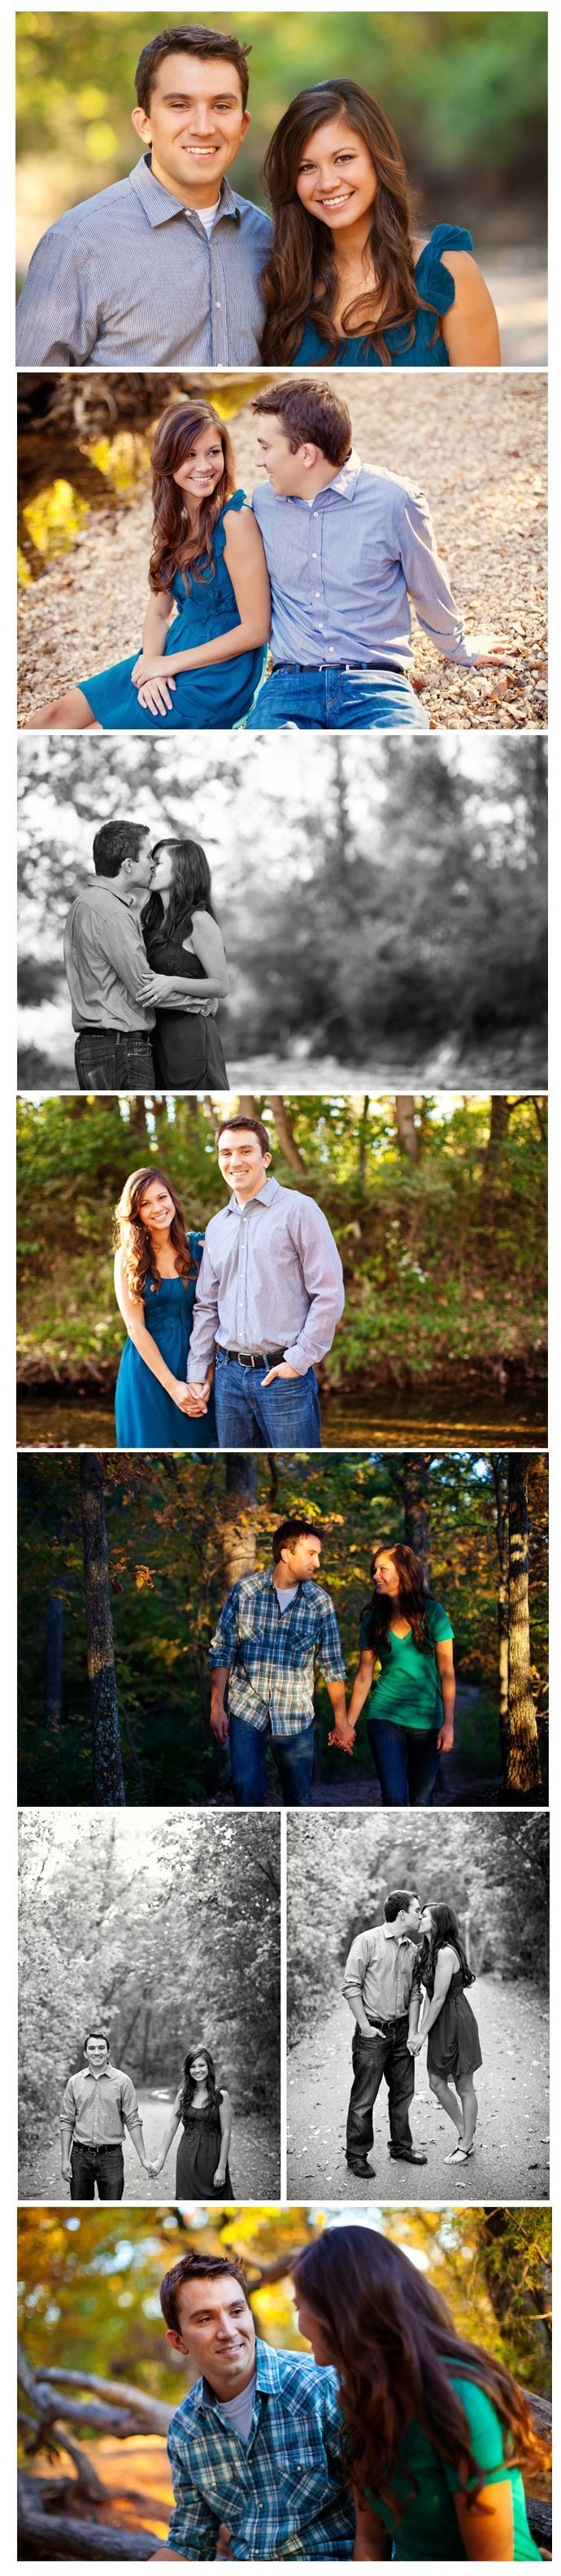 These are some cute engagement pictures